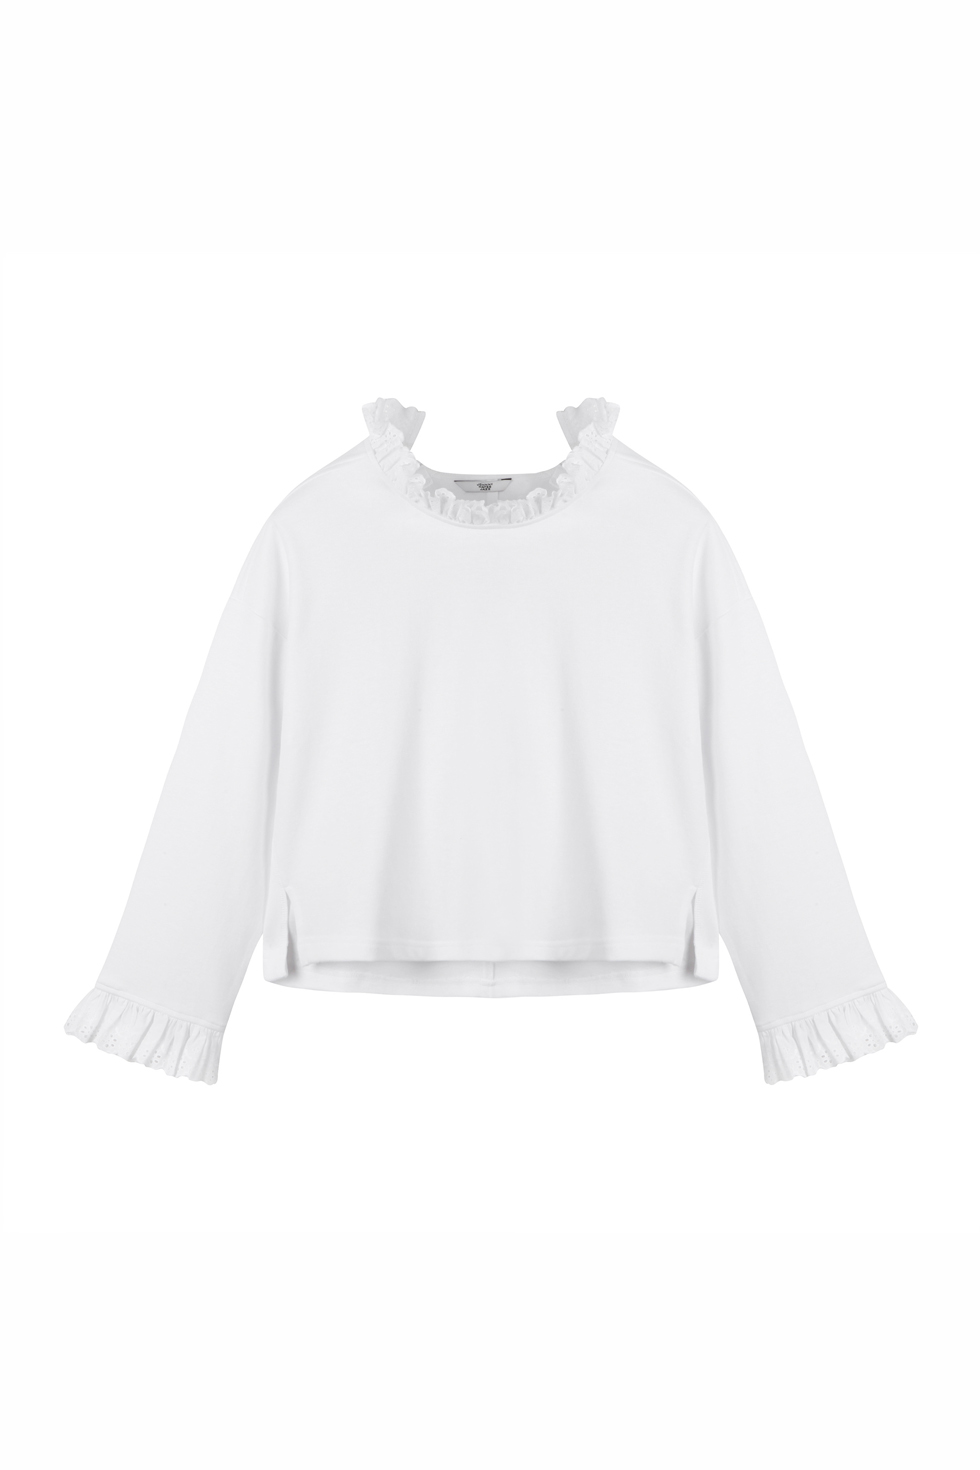 OVERSIZED RUFFLE TOP - WHITE